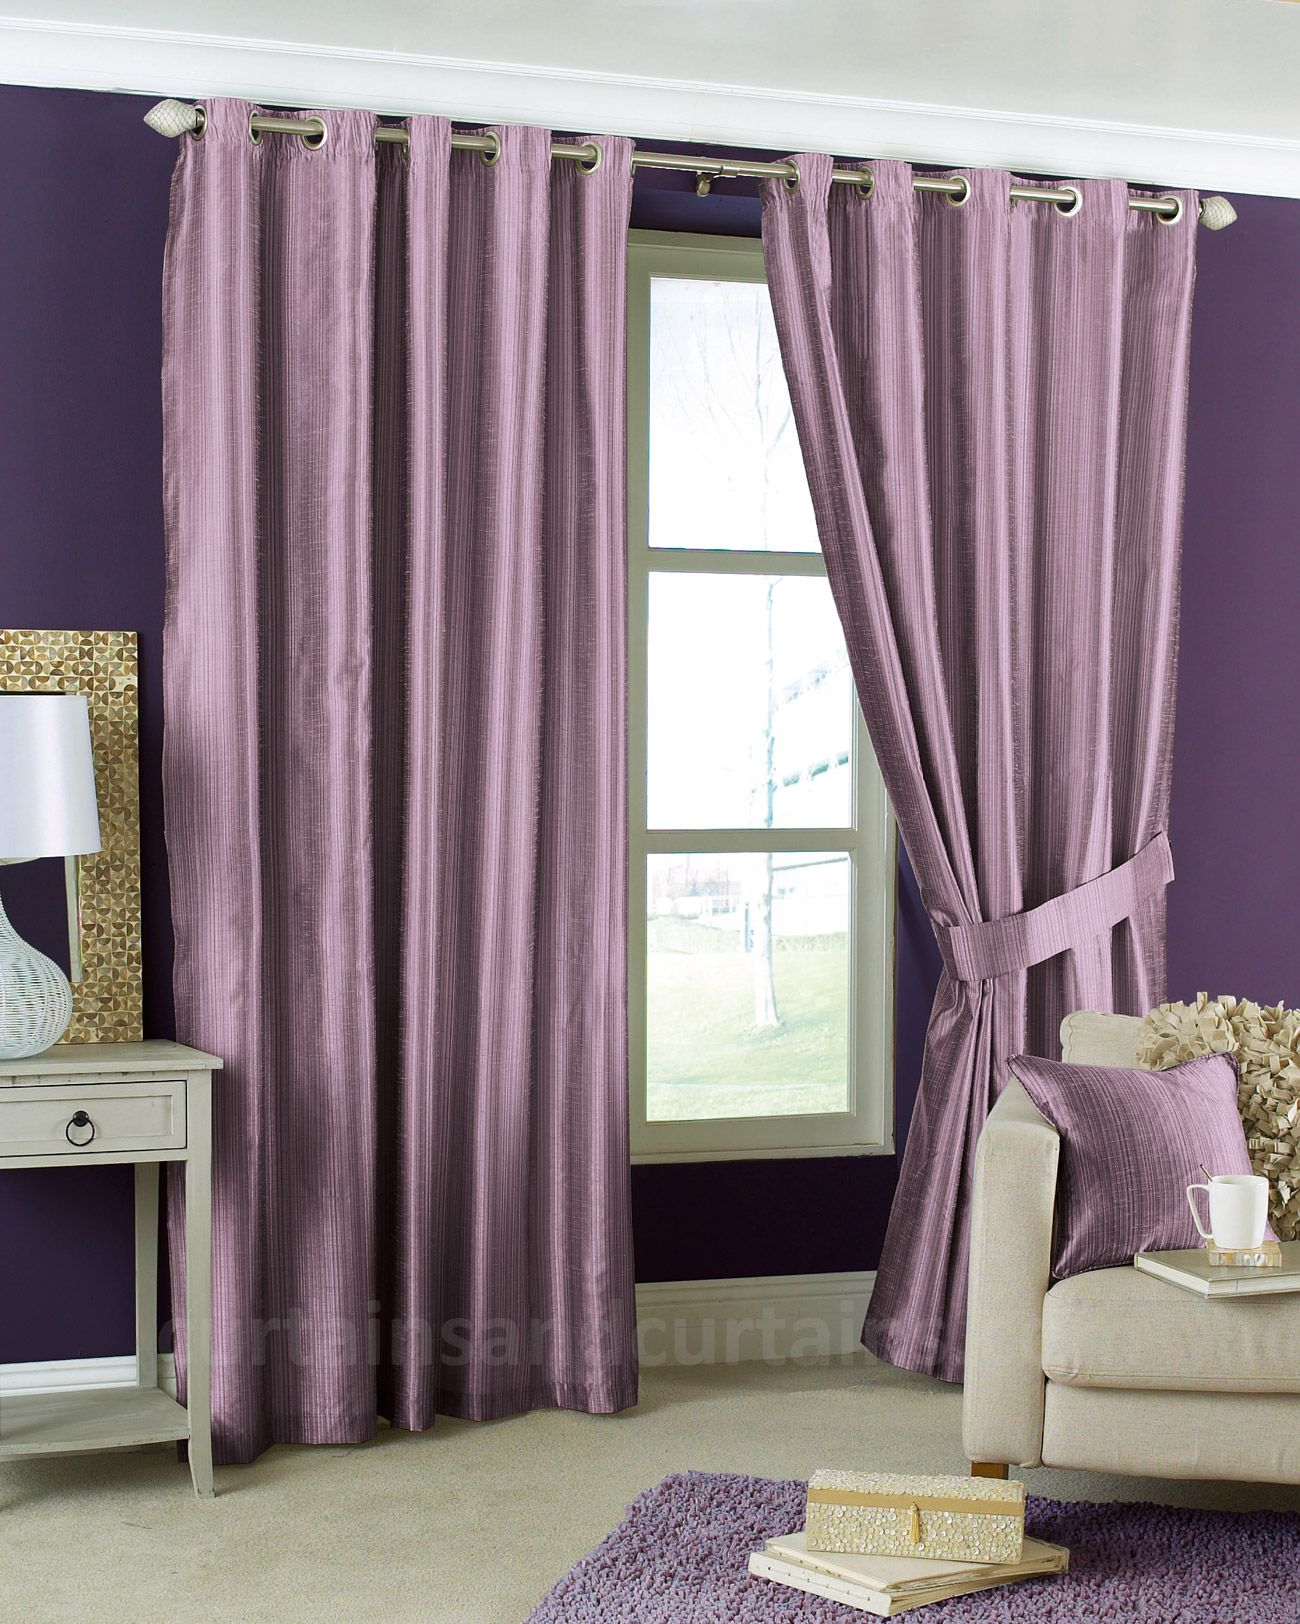 Luxury Interiordesign: Like The Wall With The Purple Curtains